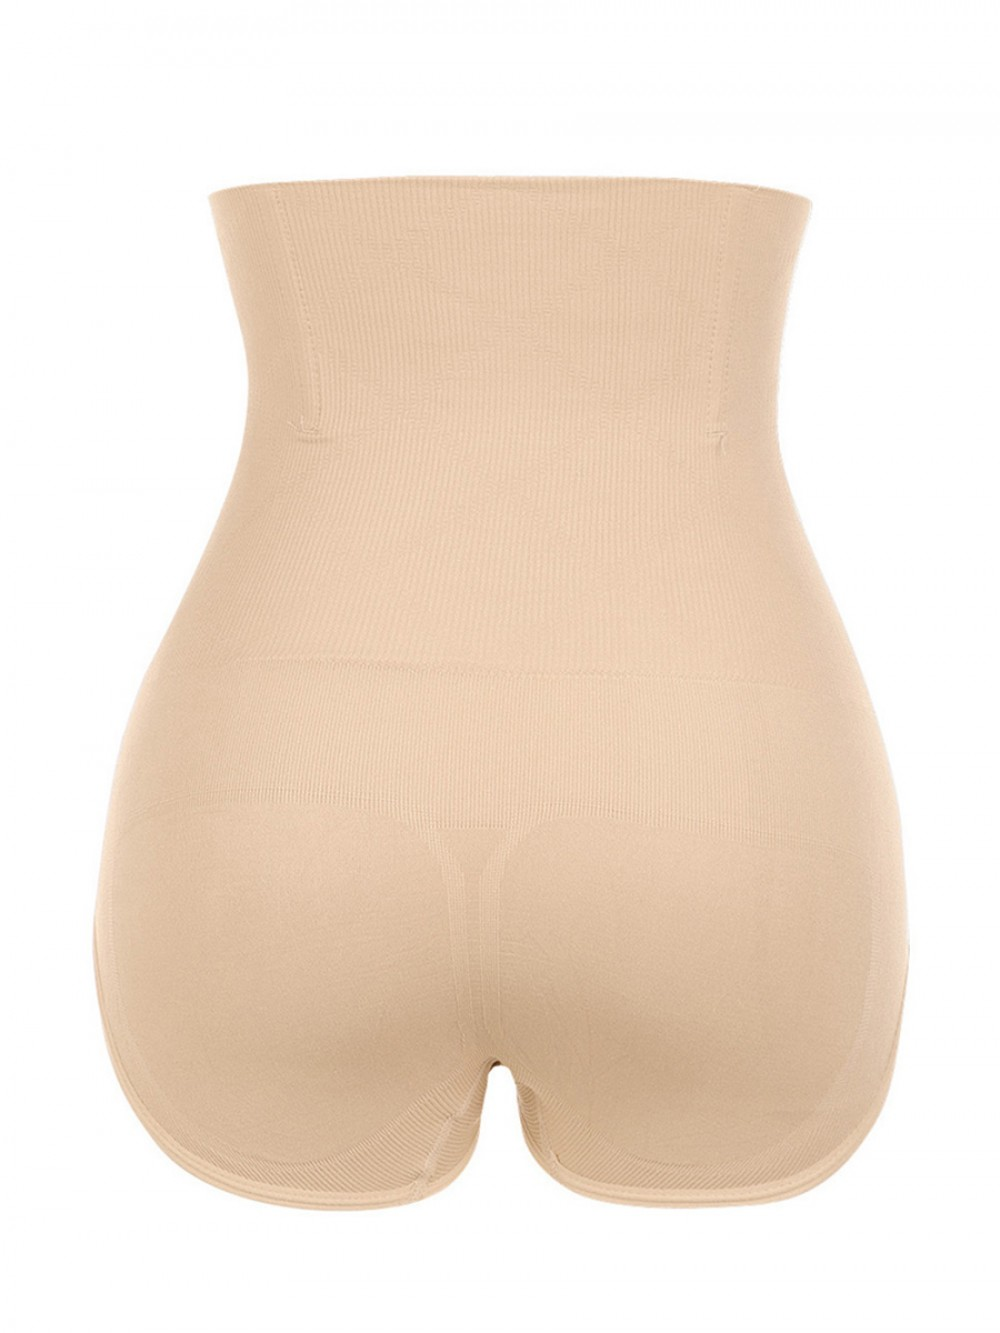 Slimming Tummy Apricot High Cut Solid Color Plus Size Panty Enhancer